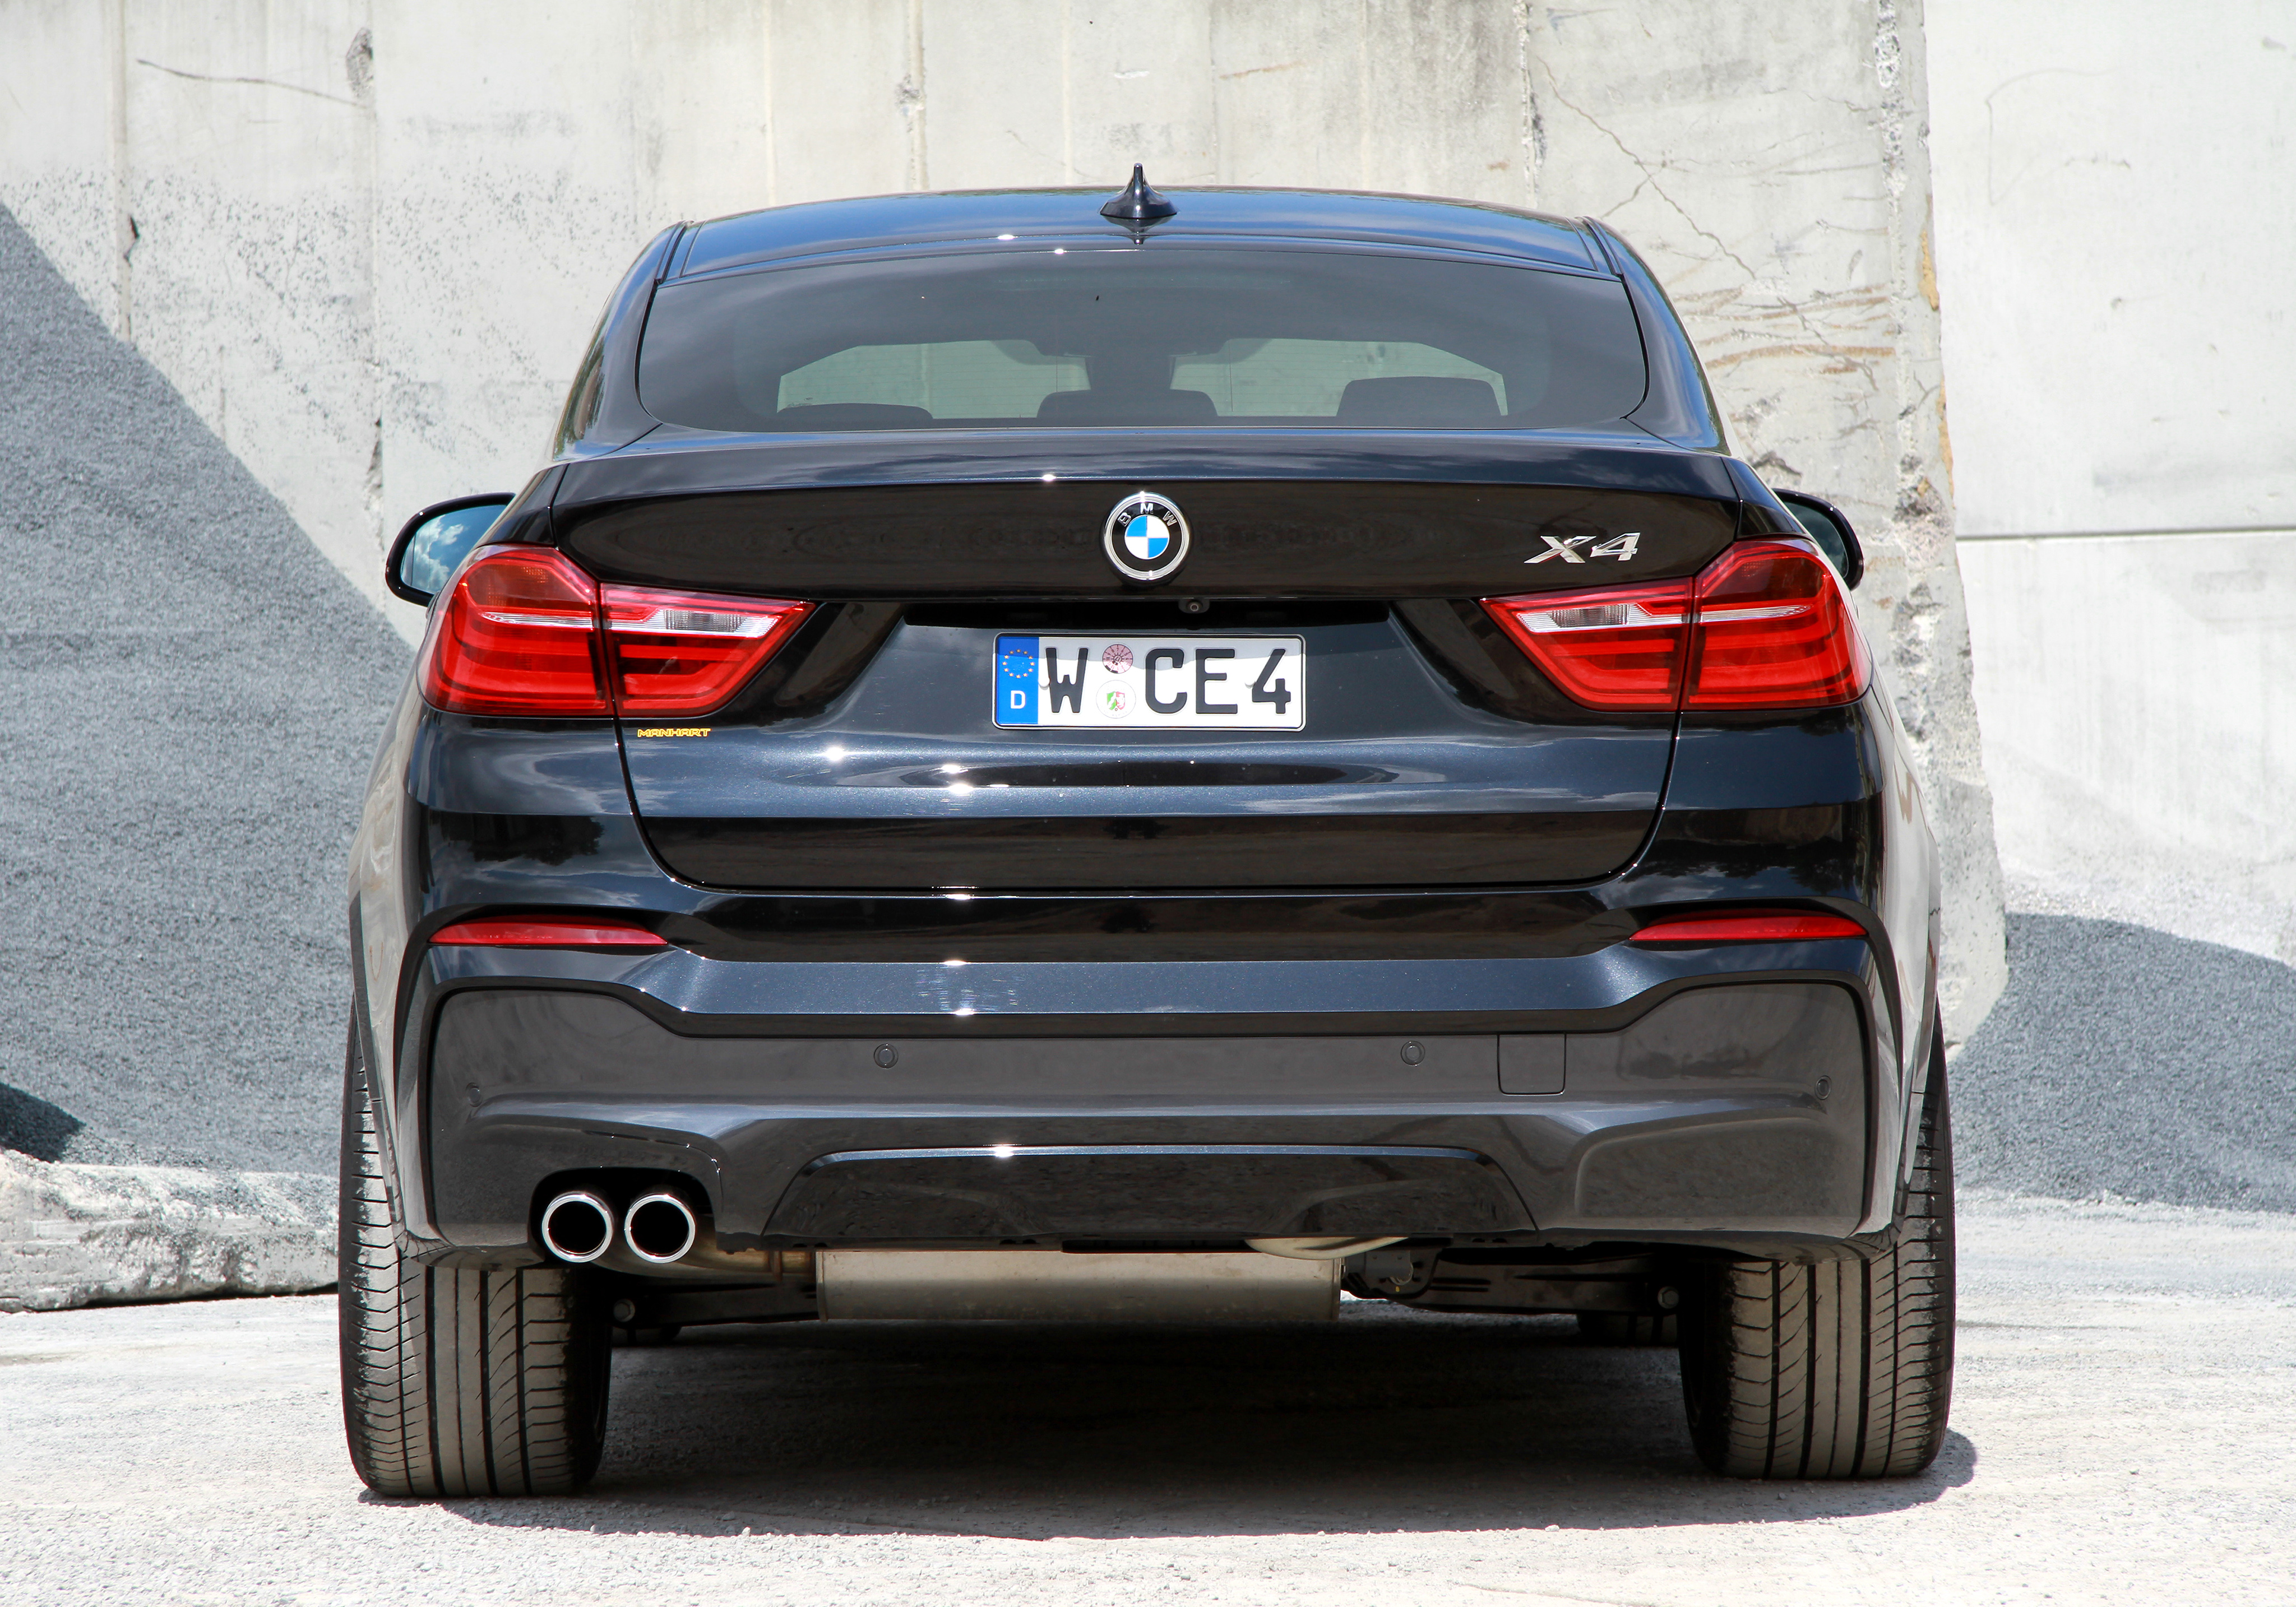 BMW X4 xDrive35d 2014 photo - 7